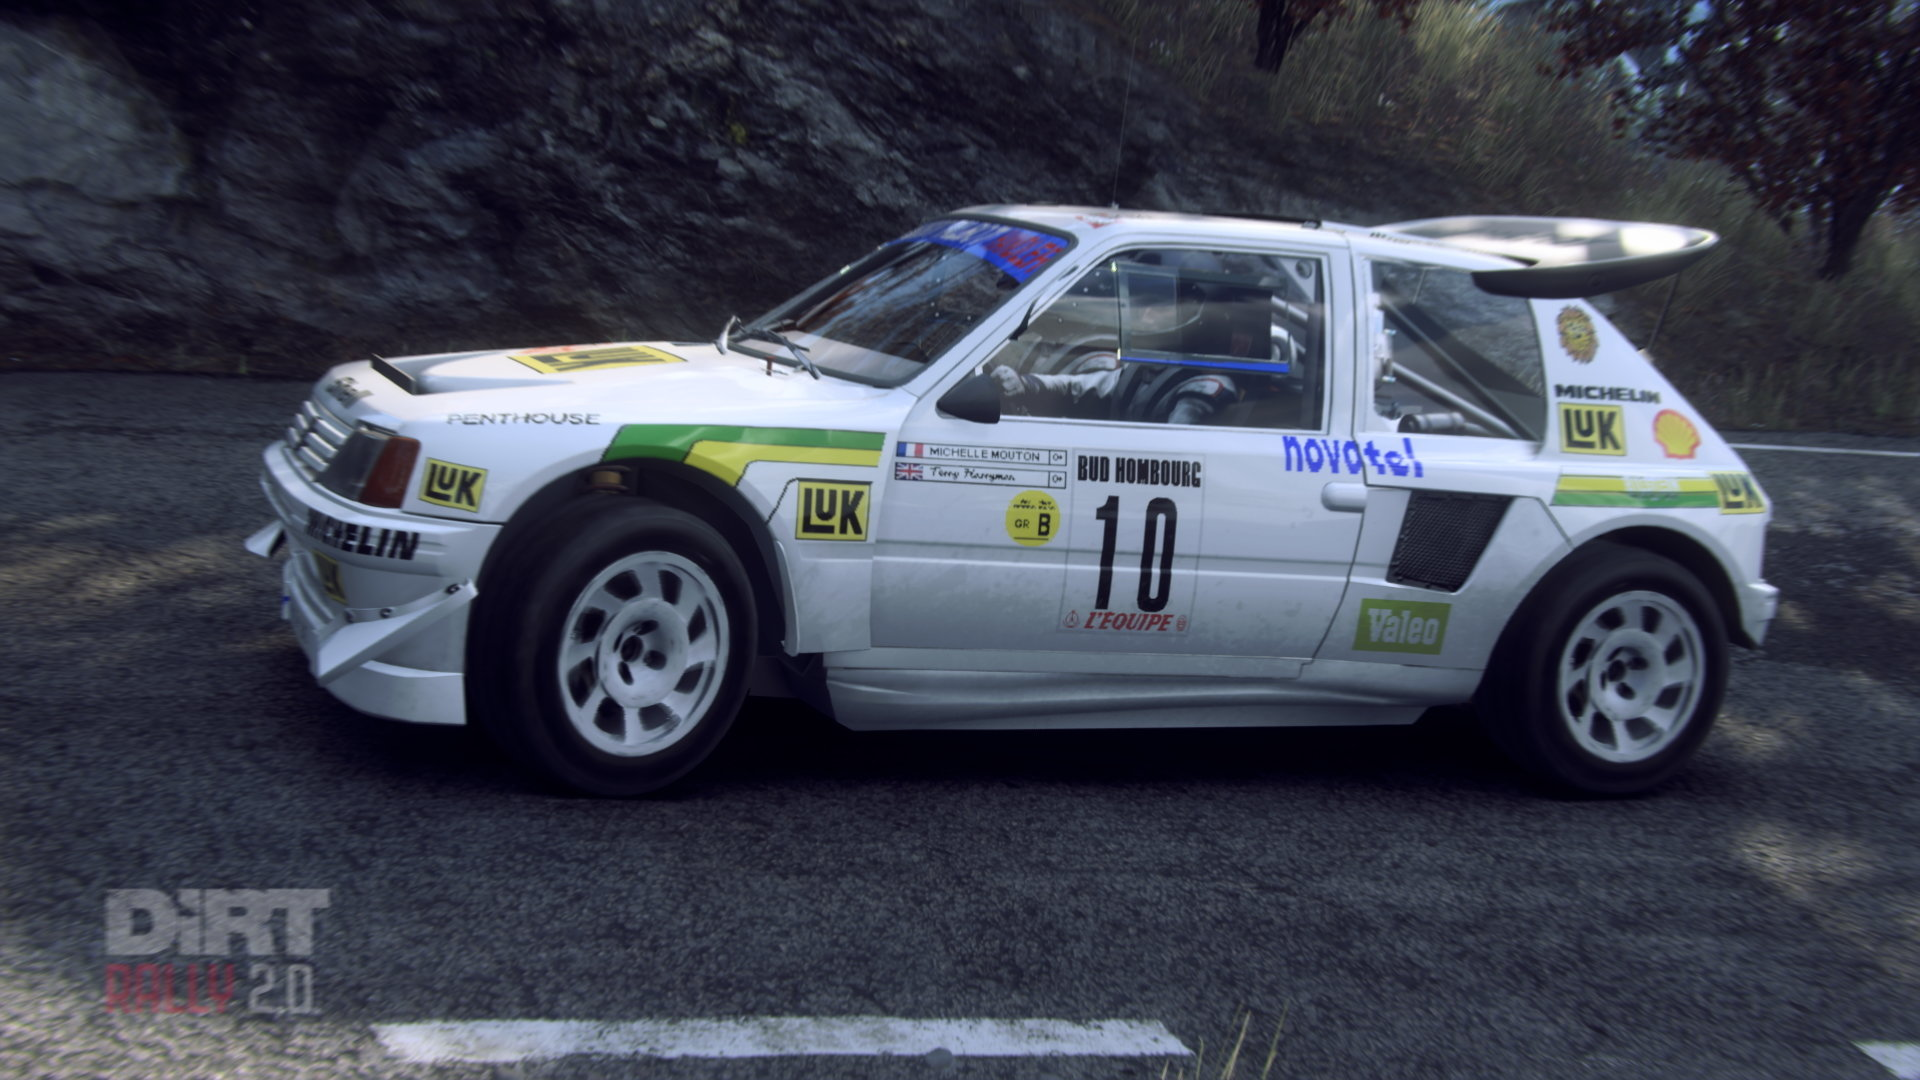 1588013067-dirtrally2-27-04-2020-18-29-4